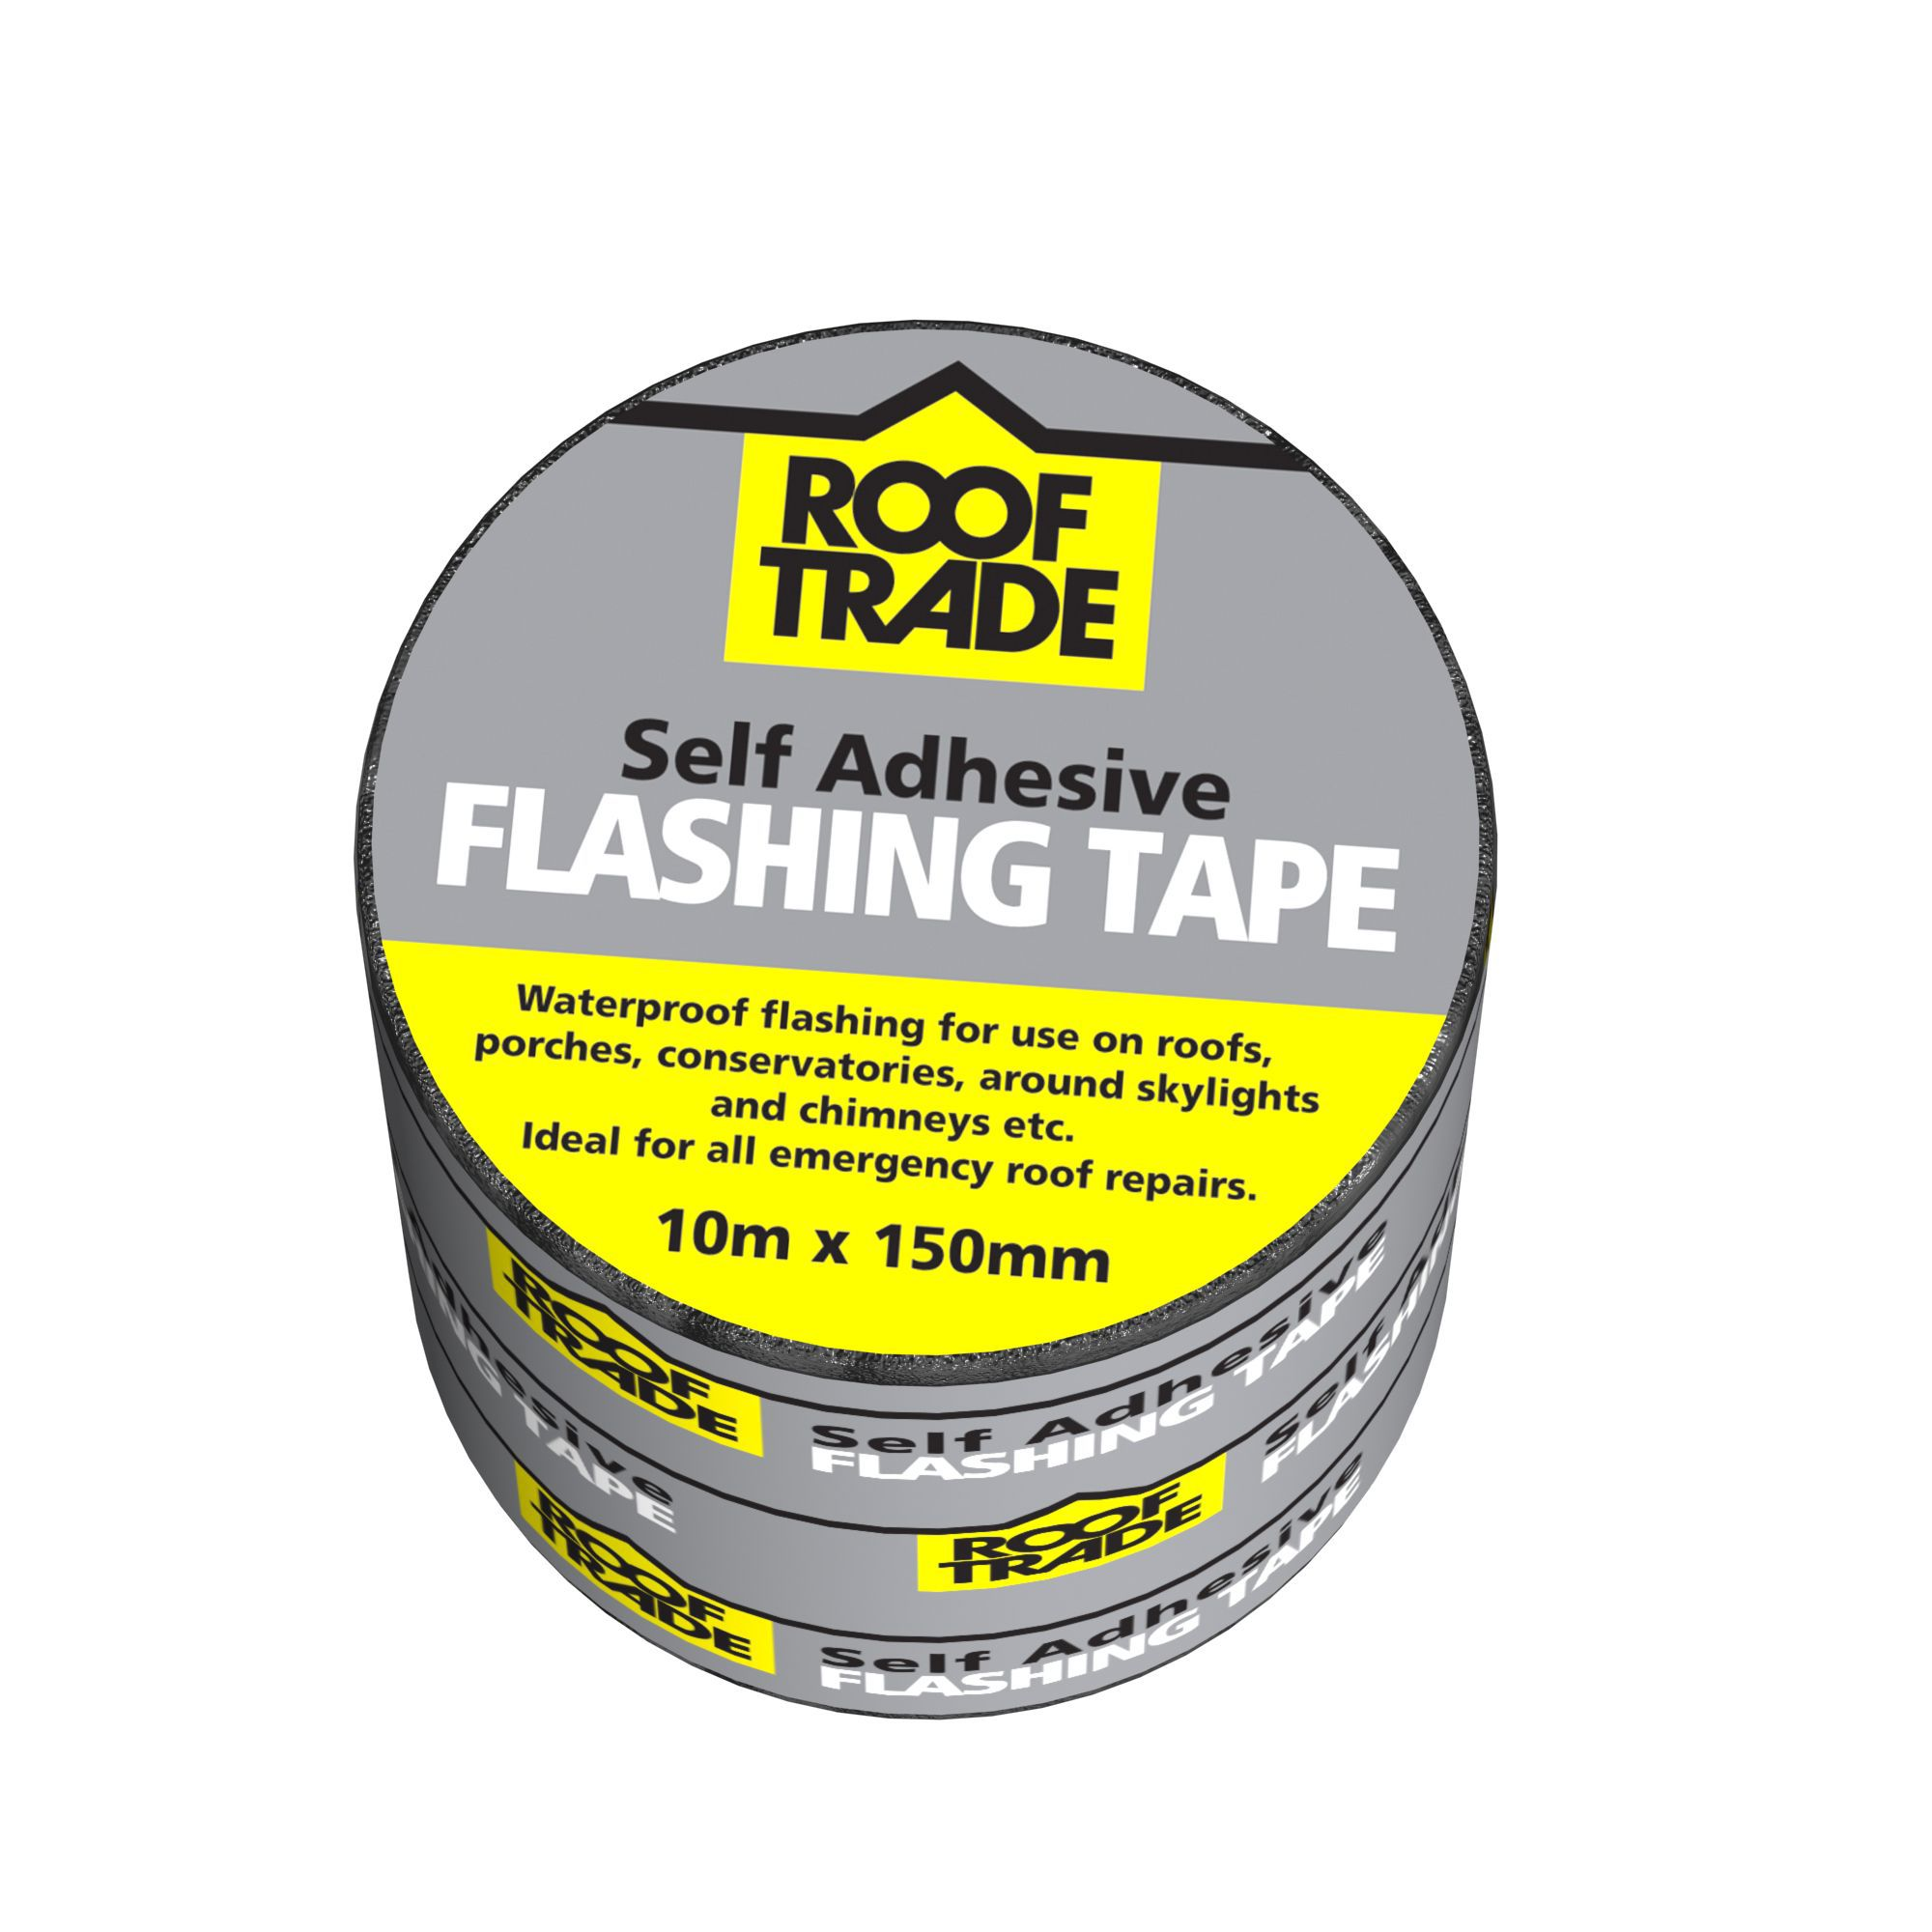 Evo-stik Rooftrade Grey Flashing Tape (l)10m (w)150mm